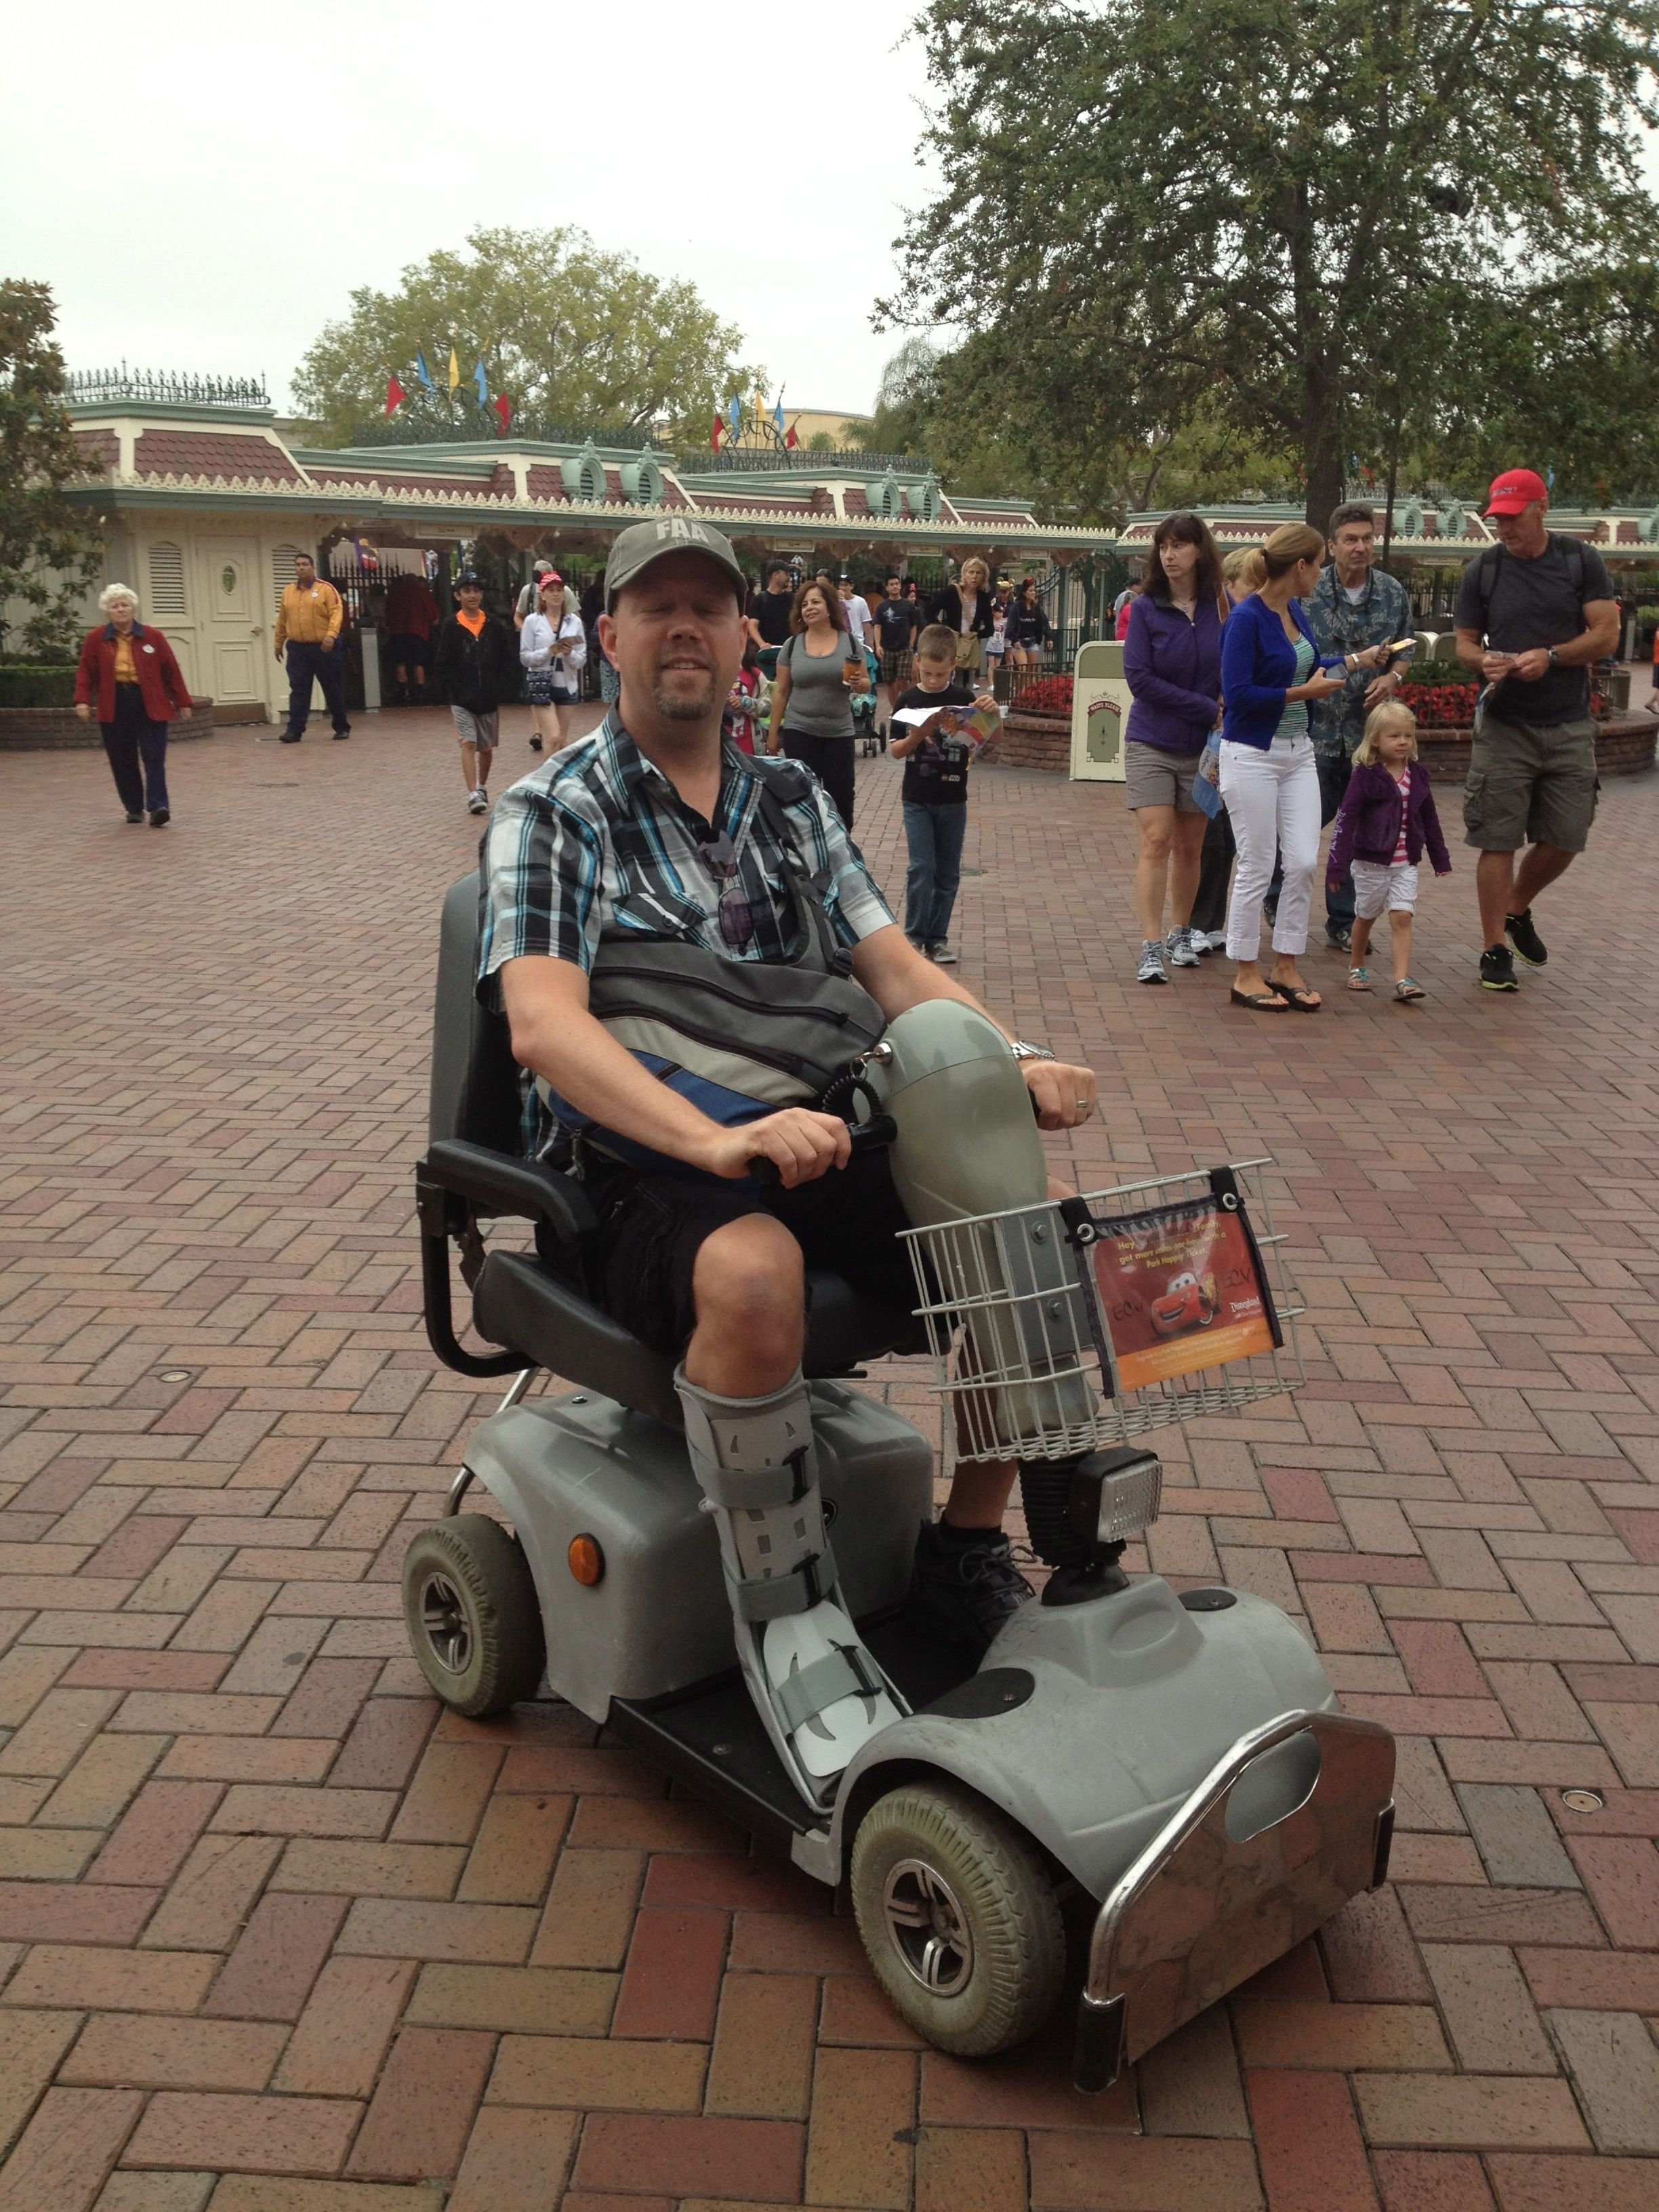 Disneyland cult of achilles a tendon recovery story for Motorized scooter rental disneyland